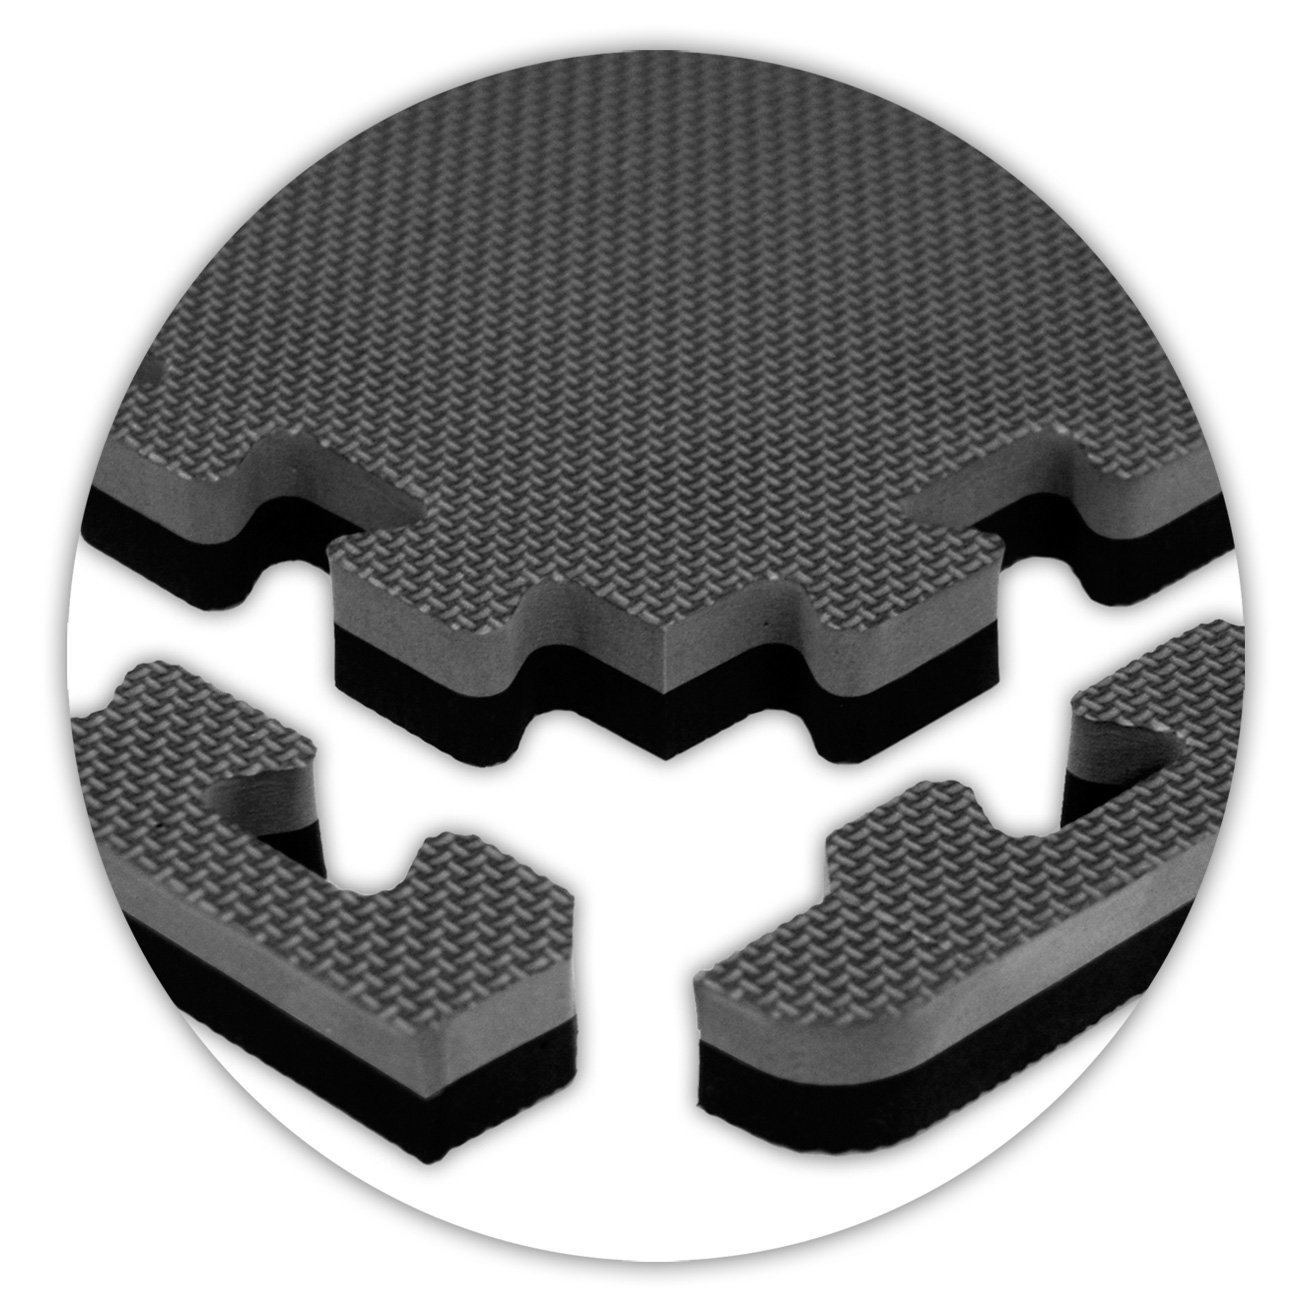 American Floor Mats Jumbo Reversible 7/8'' Thickness Black/Grey 6' x 10' (Set 15 Tiles Total) SoftFloors Interlocking Tiles